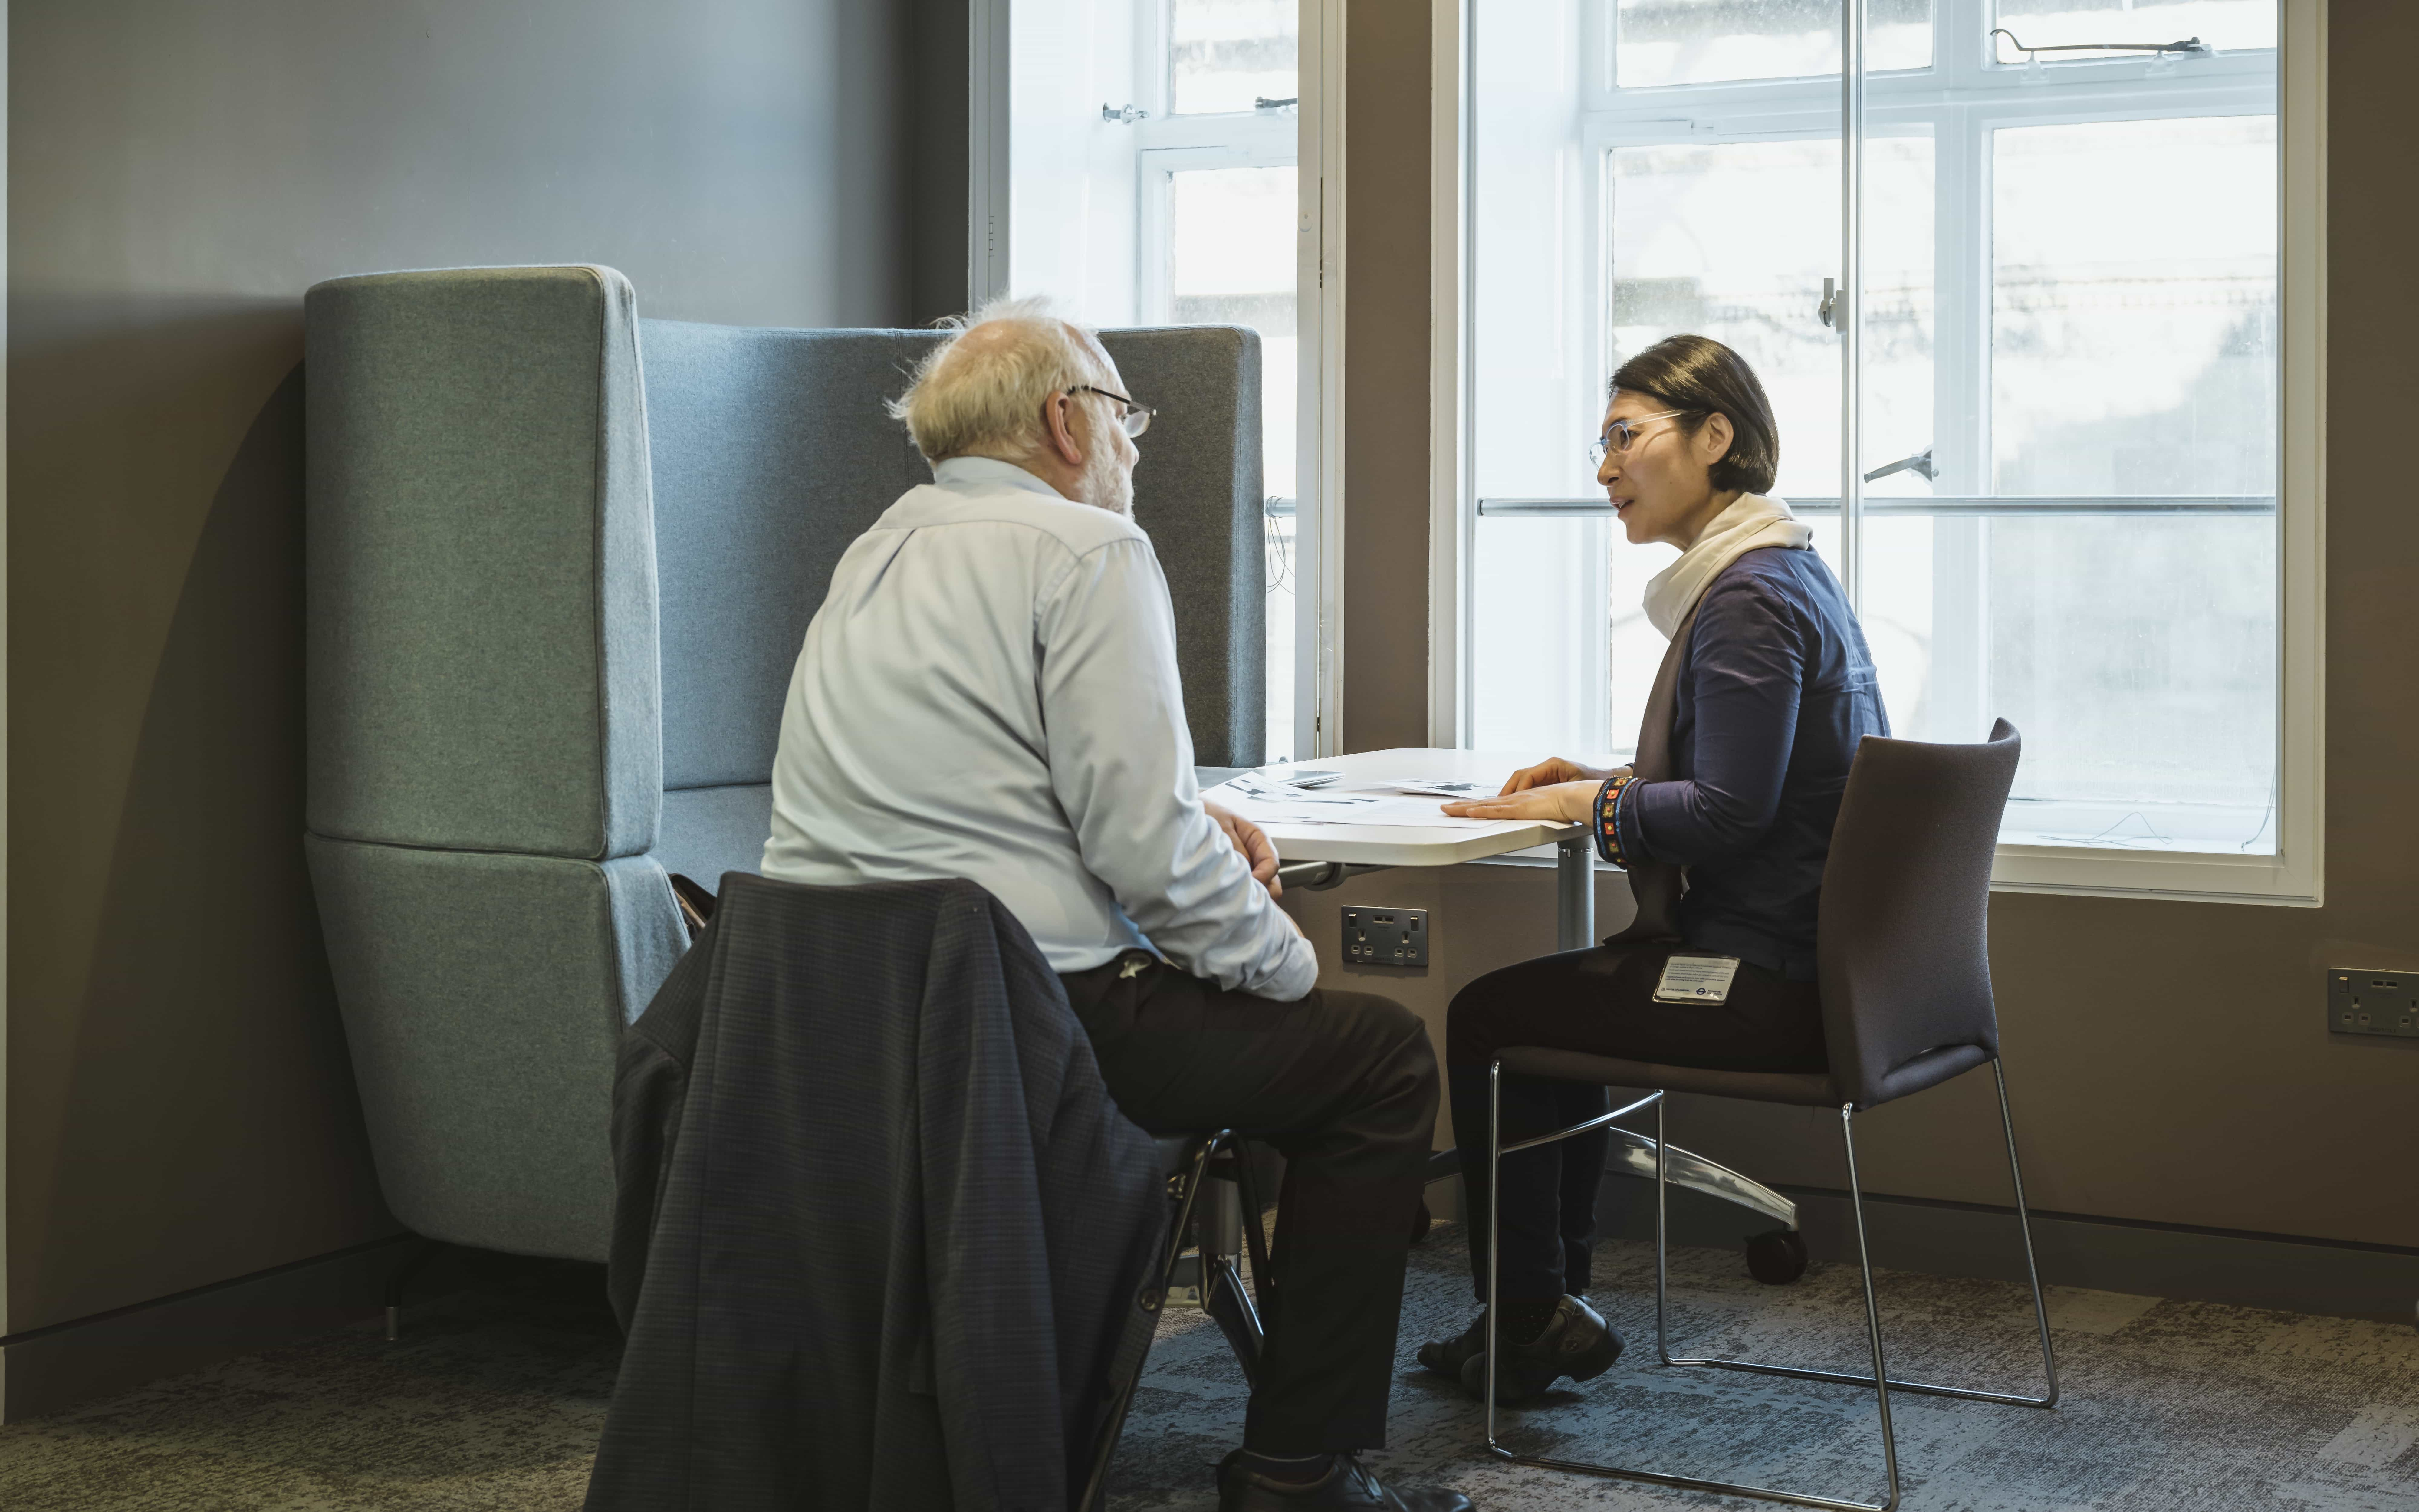 An academic talks to a mature student, they are sitting at a desk with documents in front of them